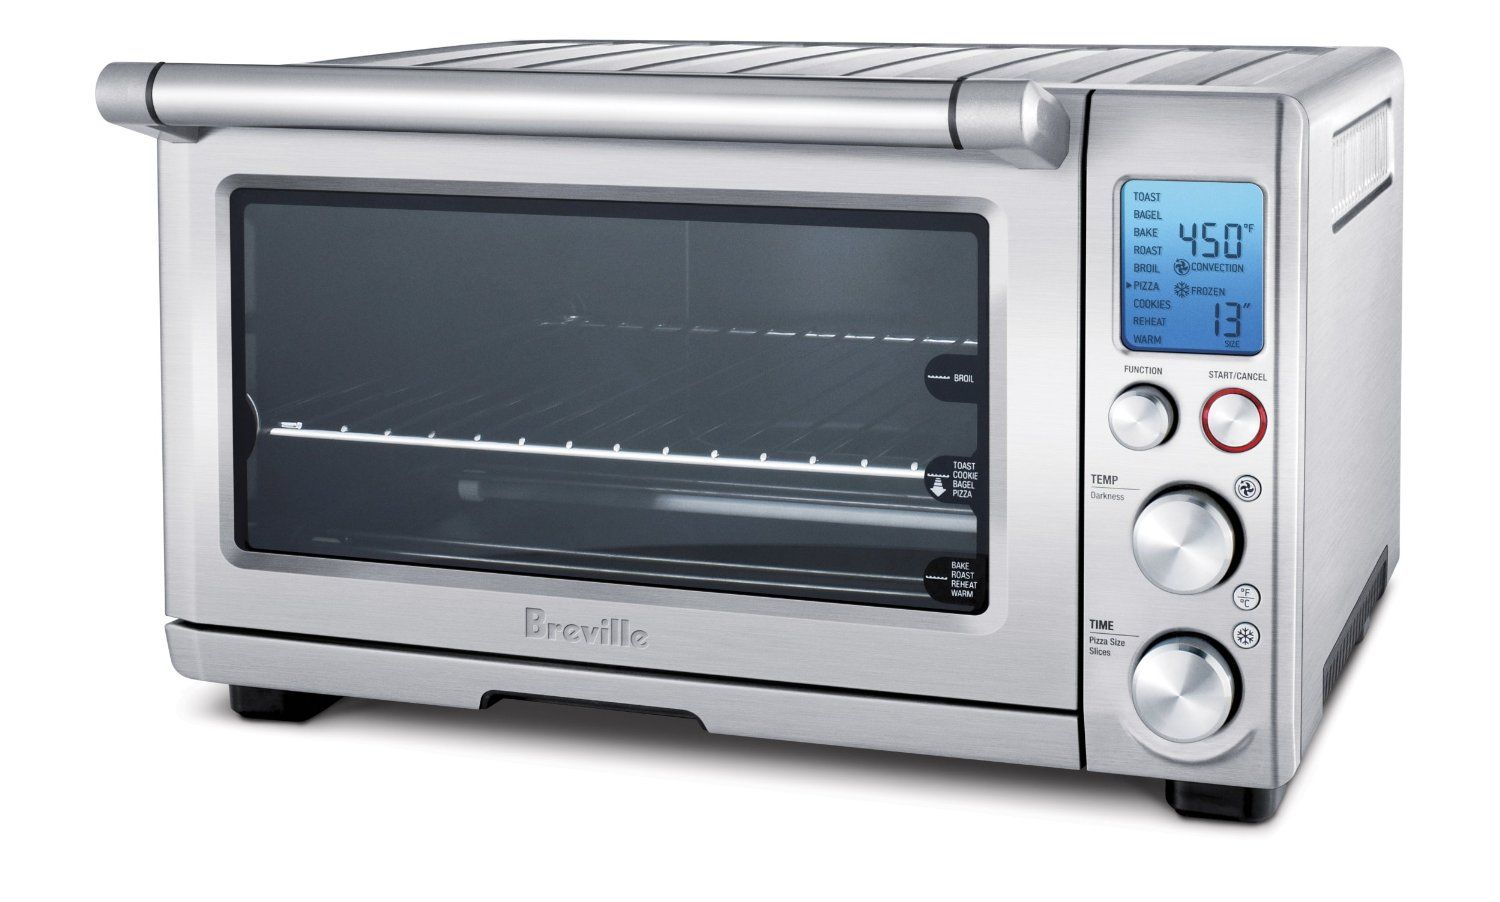 The Best Toaster Oven Toaster Countertop Oven Oven